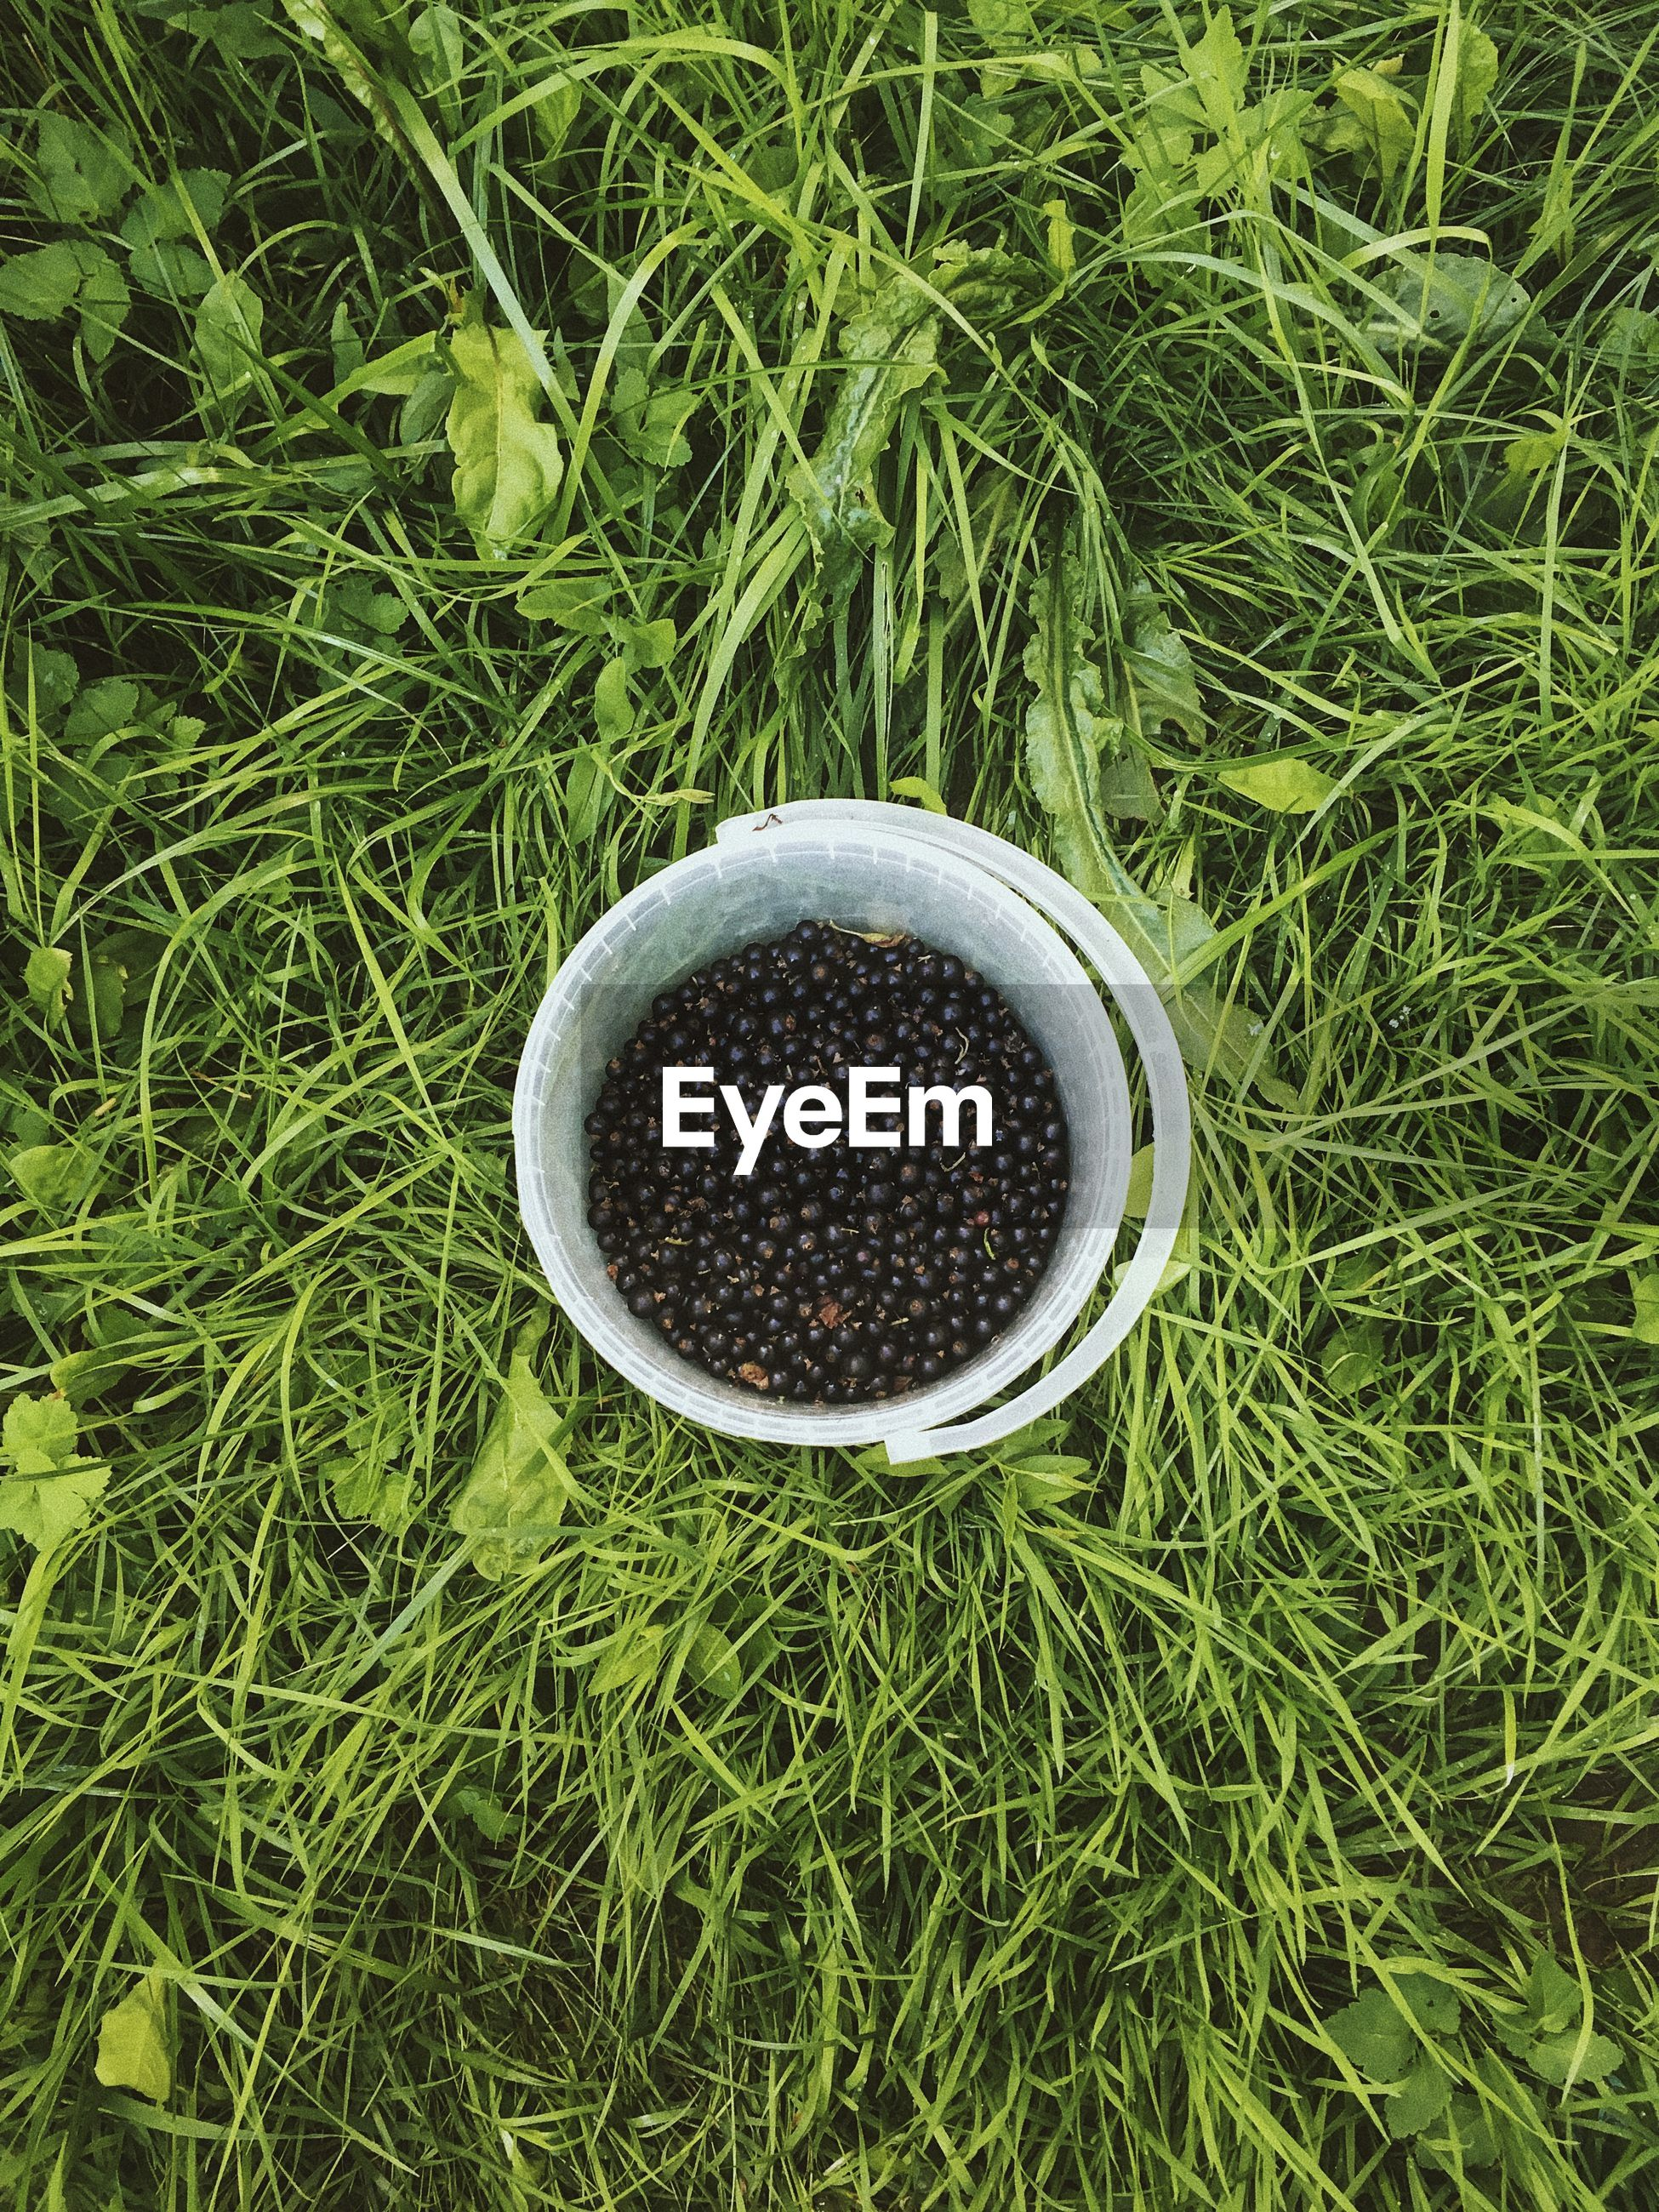 HIGH ANGLE VIEW OF COFFEE IN CUP ON GRASS